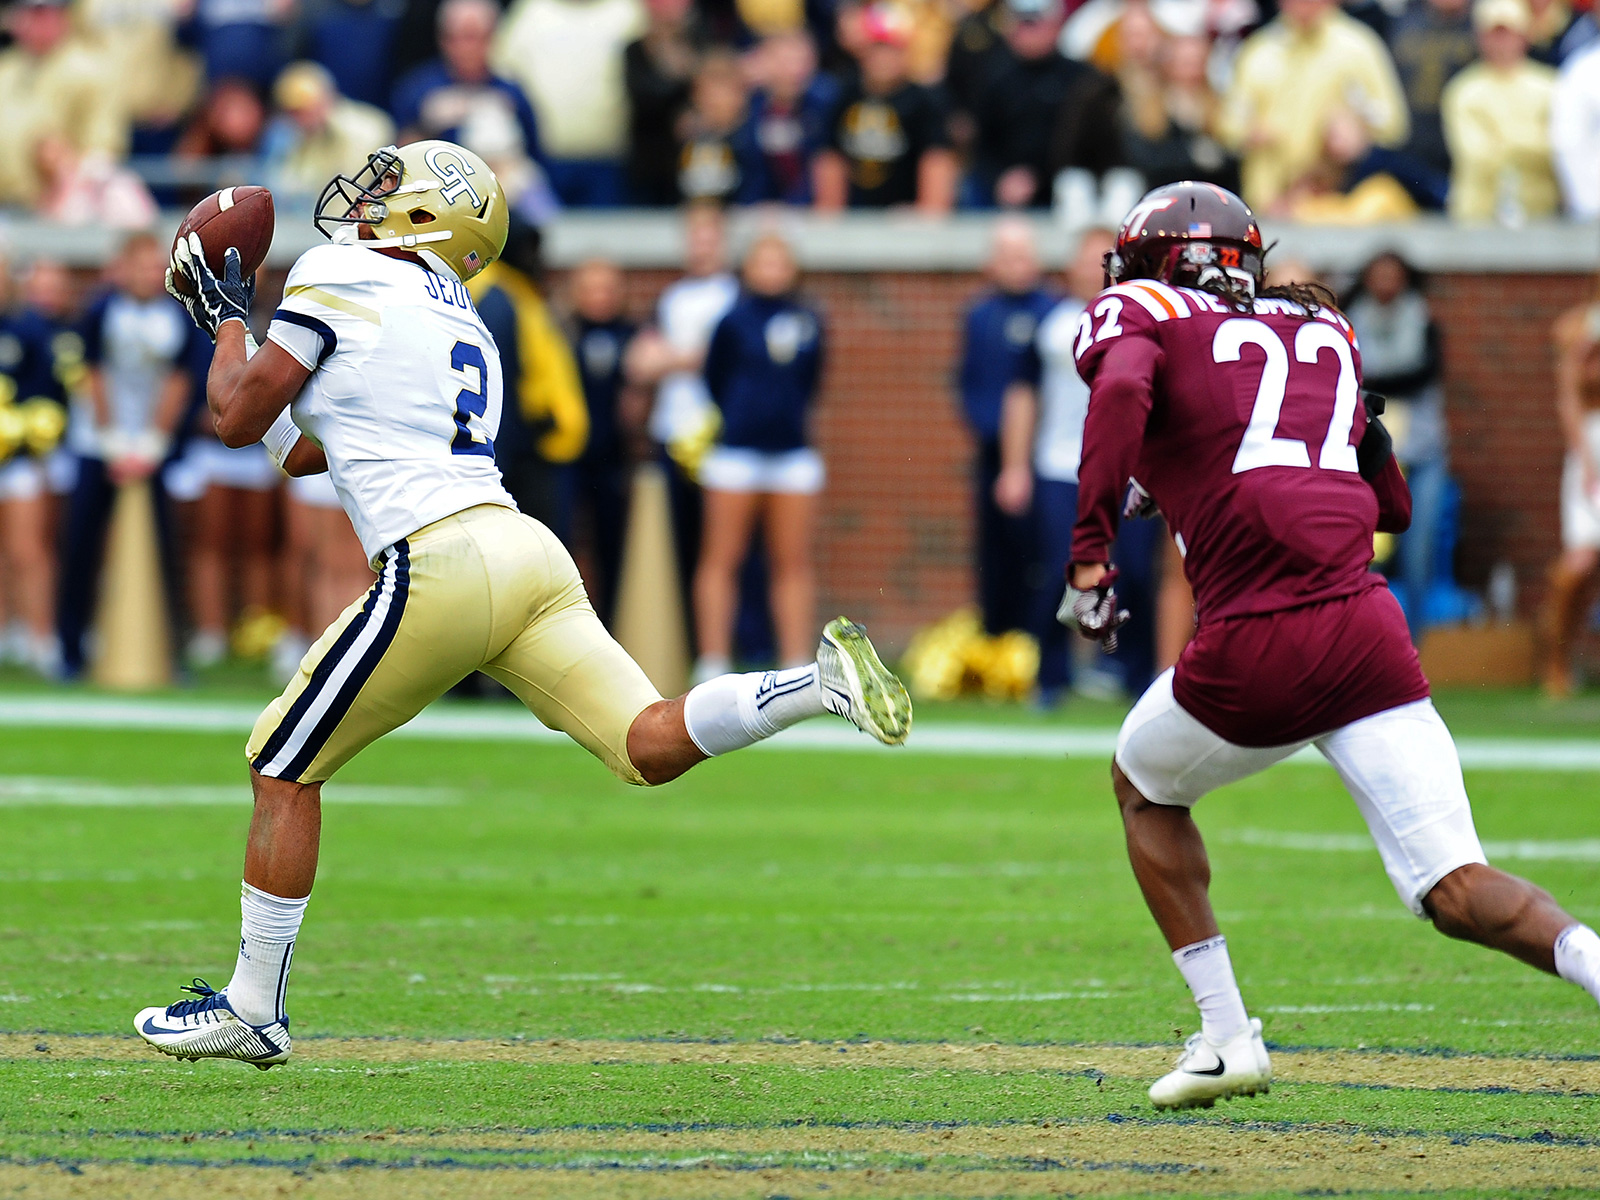 The surprise here wasn't necessarily that the Yellow Jackets won but rather how they won: with an aerial assault. Taquon Marshall completed only two passes, but those two completions went for 60- and 80-yard touchdowns in the second half as Georgia Tech's triple-option-centric offense caught the Hokies off guard.